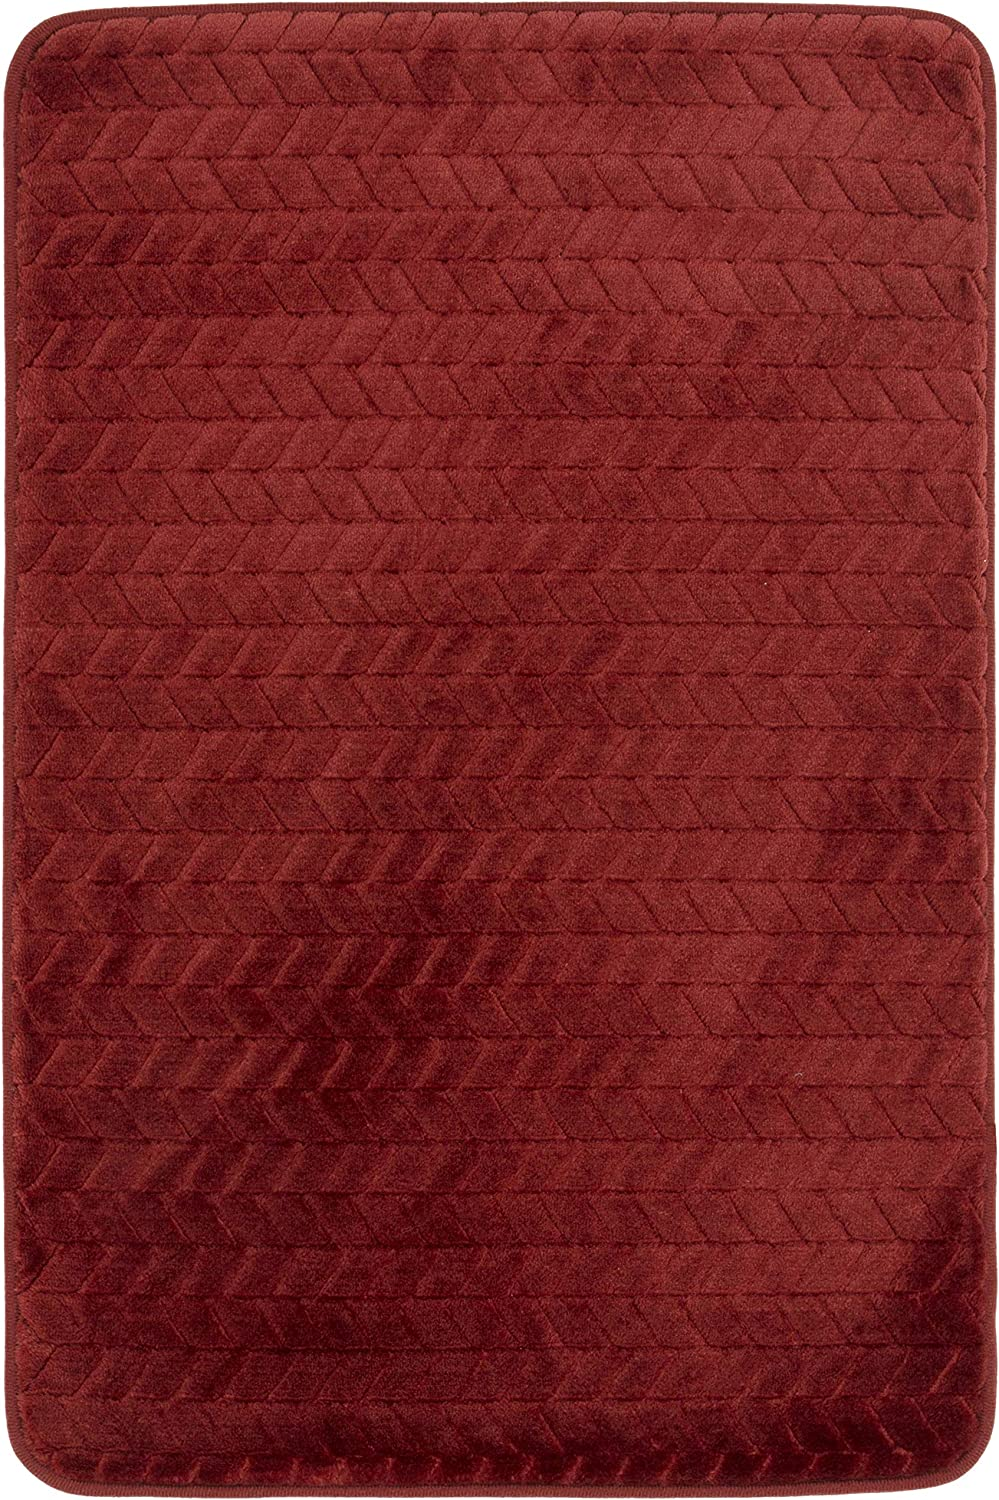 Mohawk Memory Foam Bath Rug | Stain Resistant 100% Polyester Pile (RED)